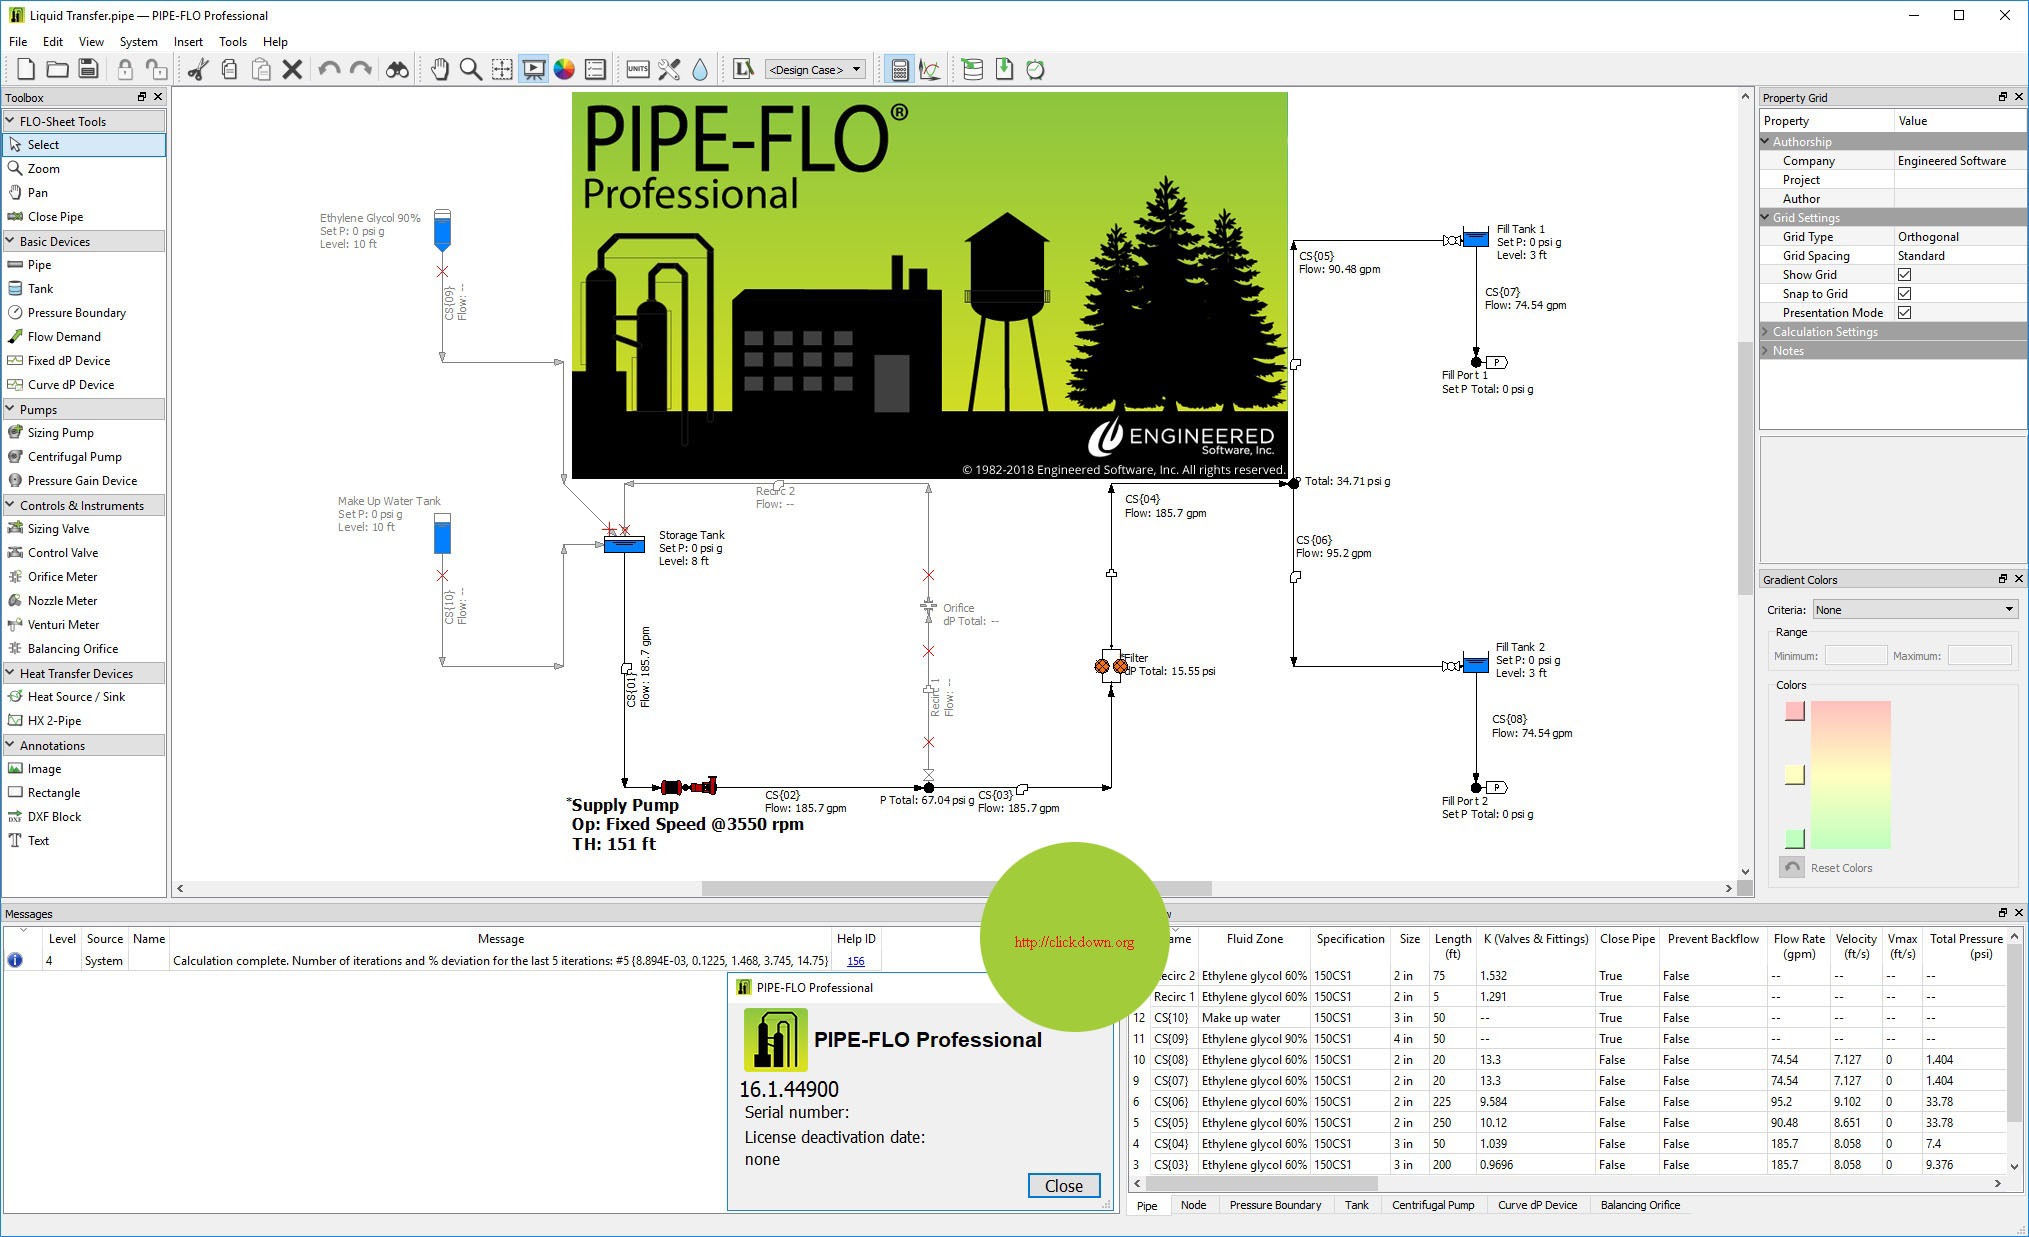 Working with Engineered Software PIPE-FLO Pro 2018 v16.1.44900 full license